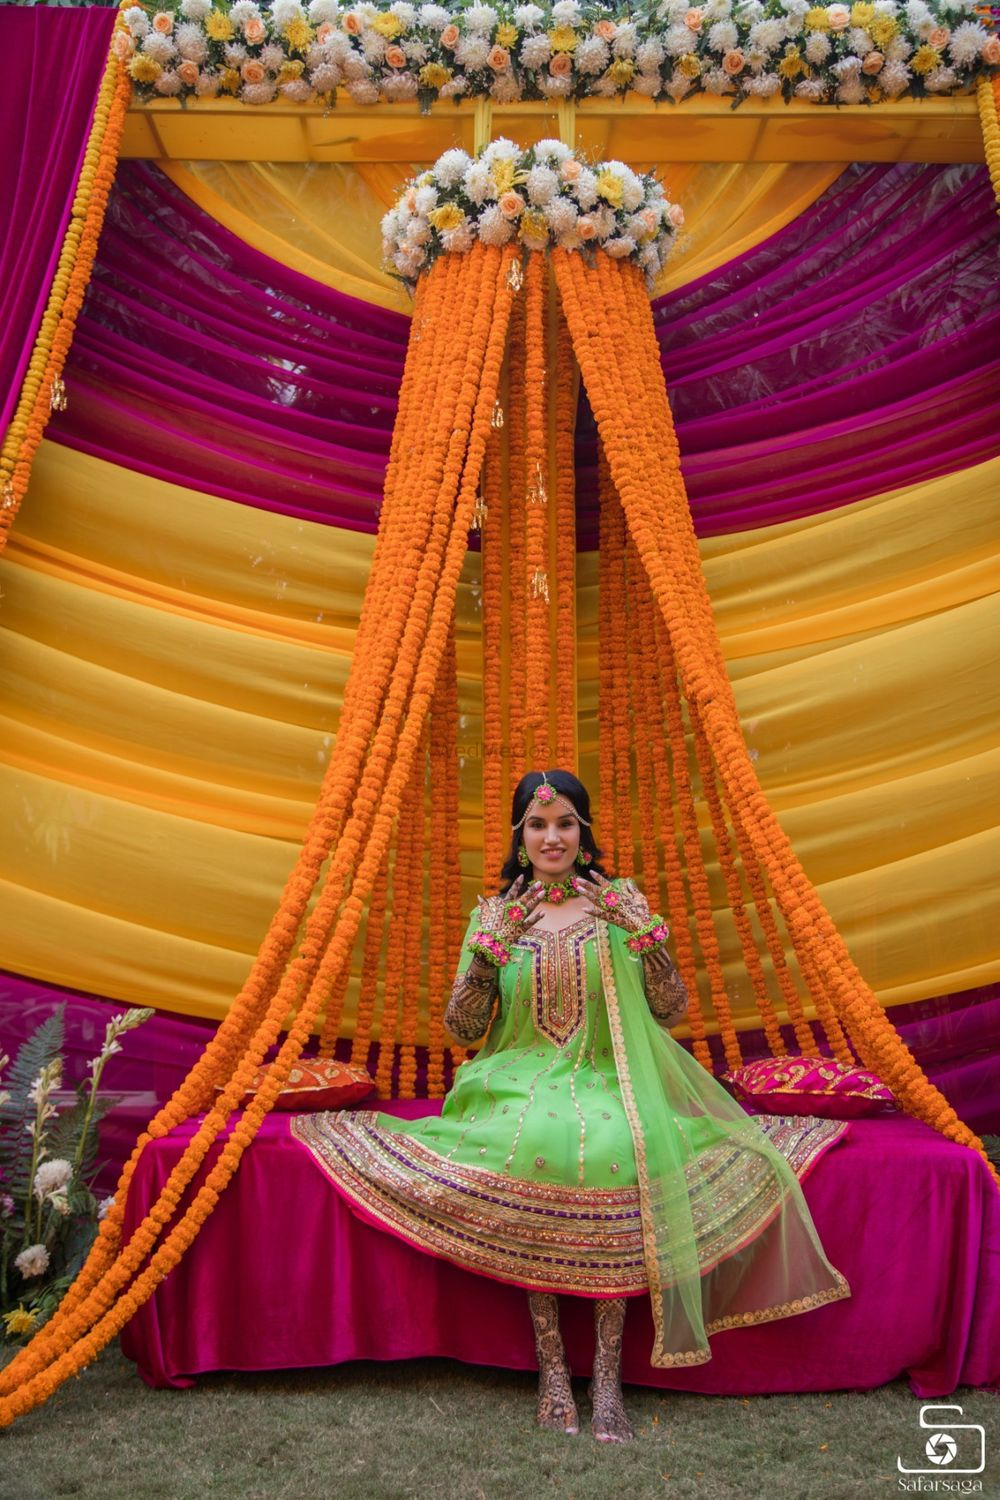 Photo of A bride in a parrot green mehndi outfit